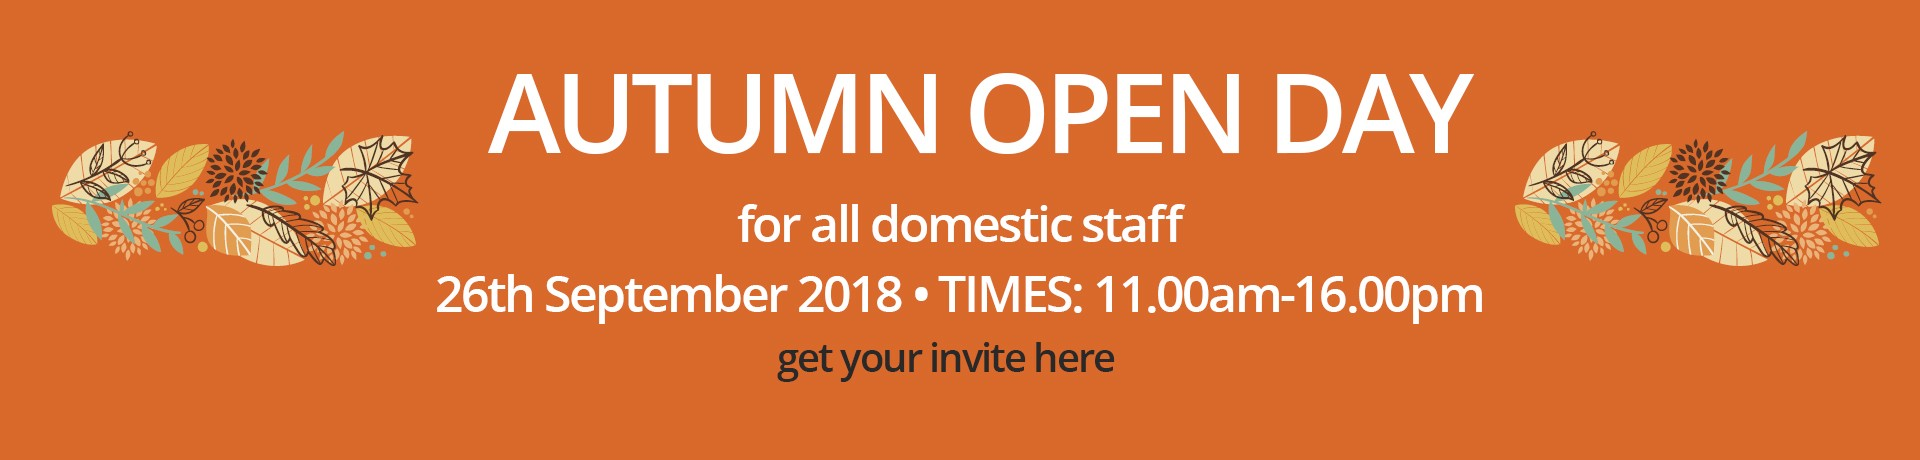 autumn-open-day